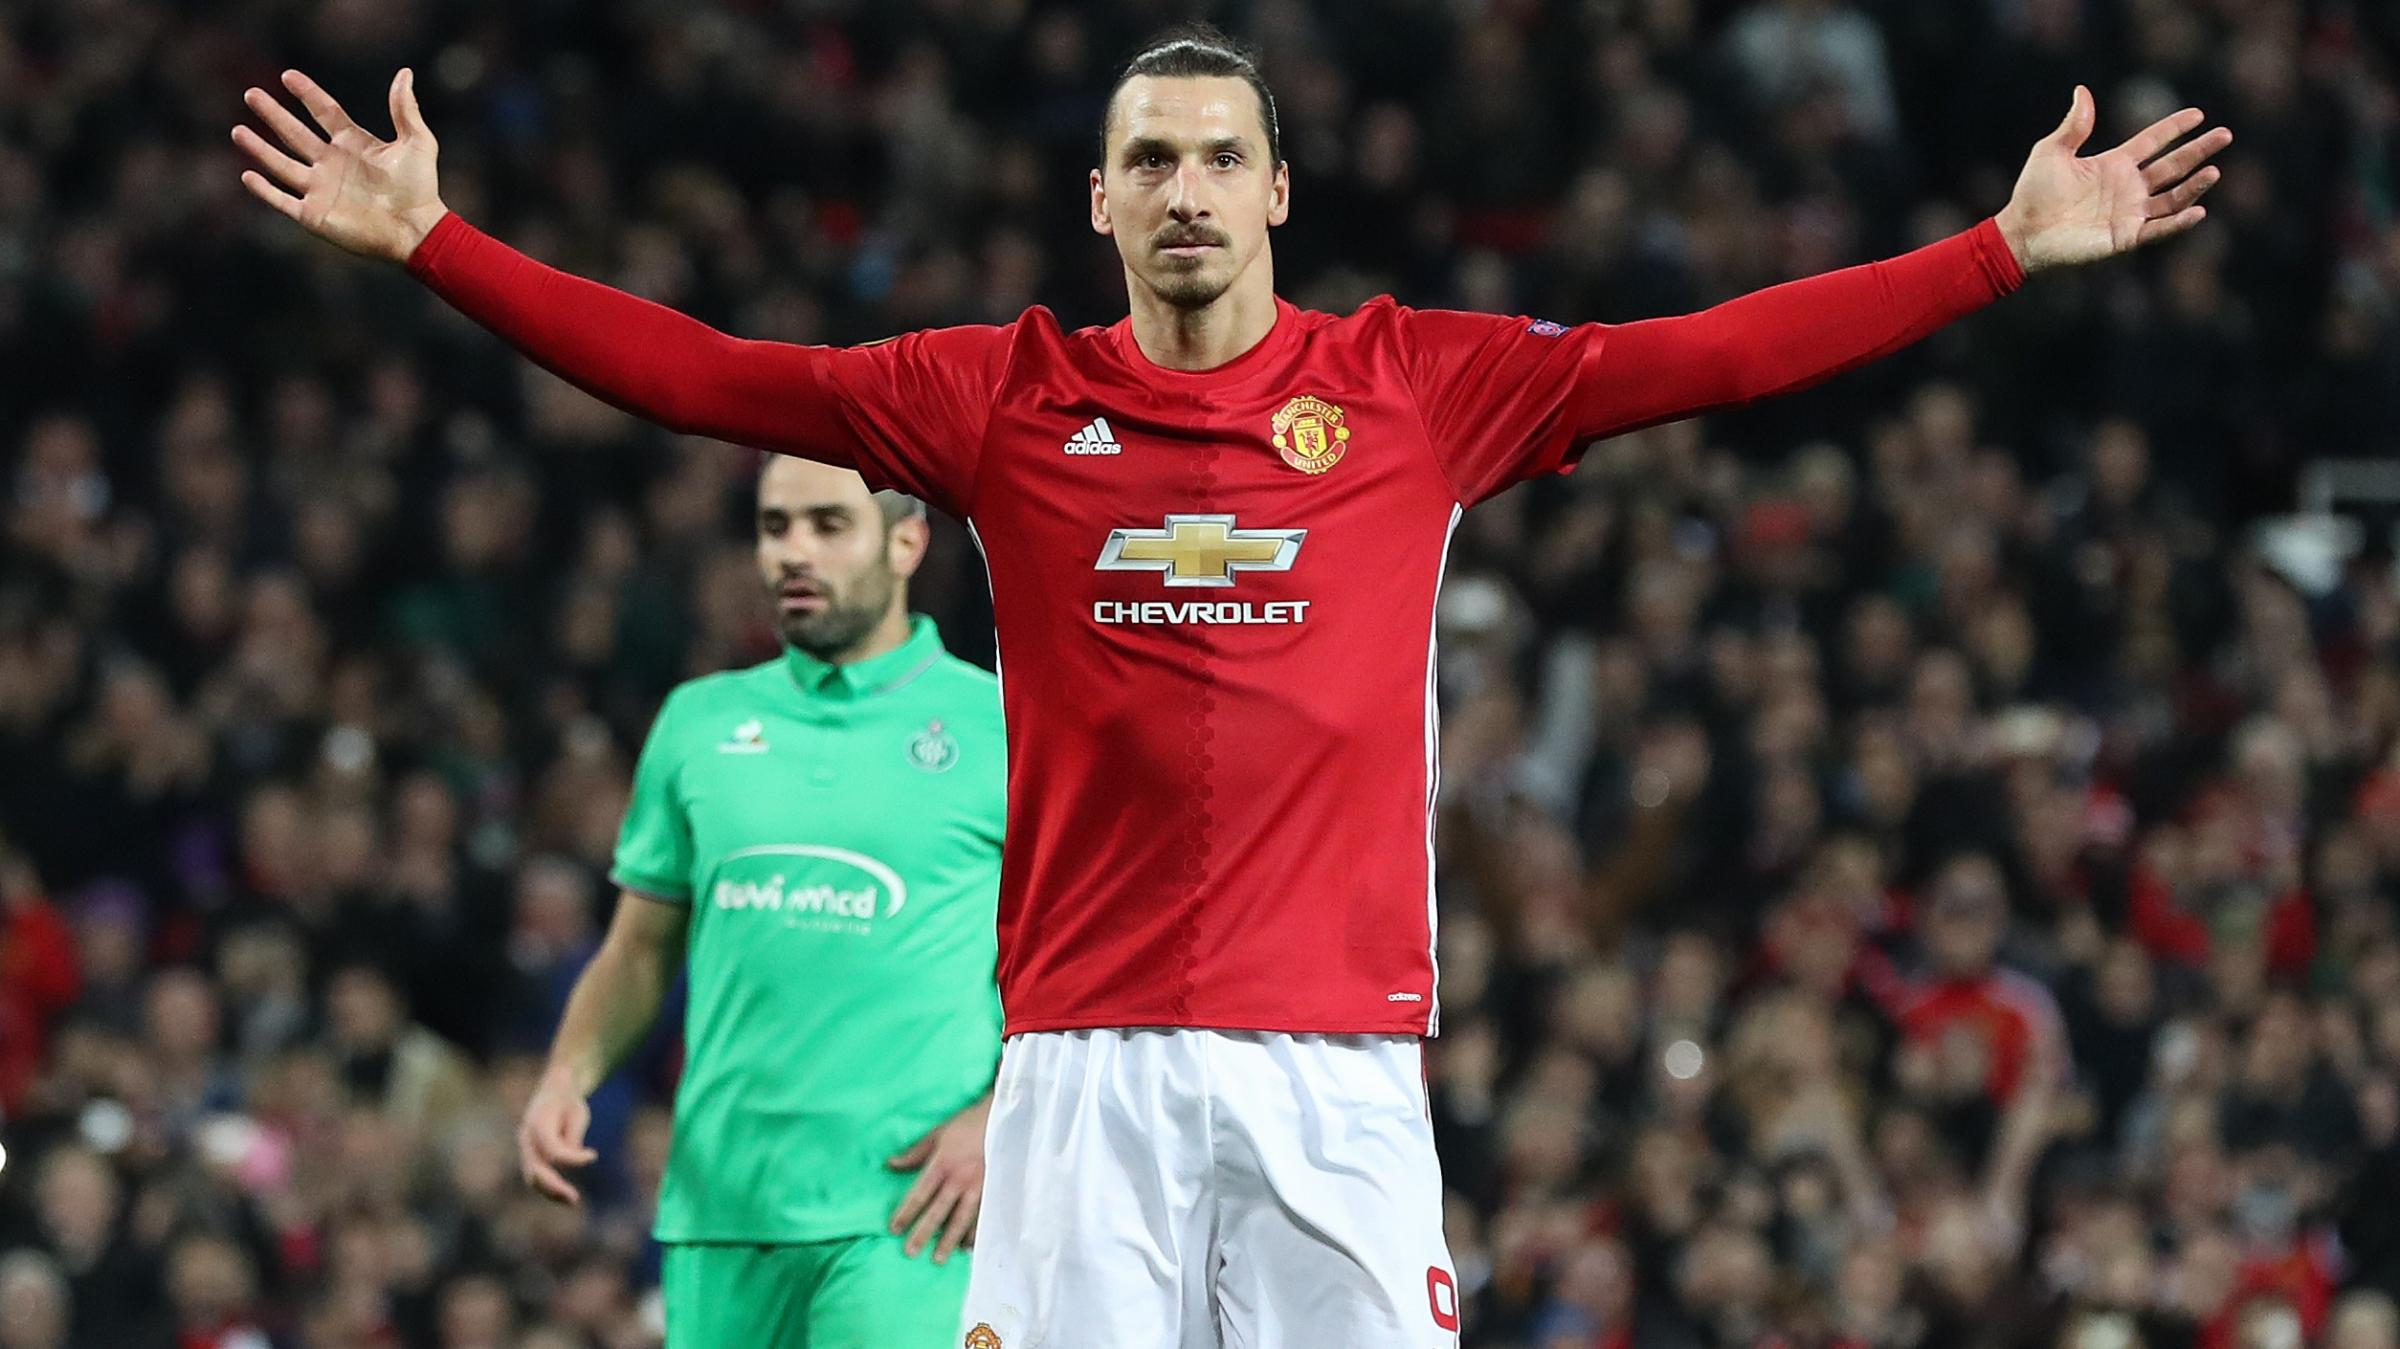 Manchester United won't offer Zlatan Ibrahimovic new deal to stay